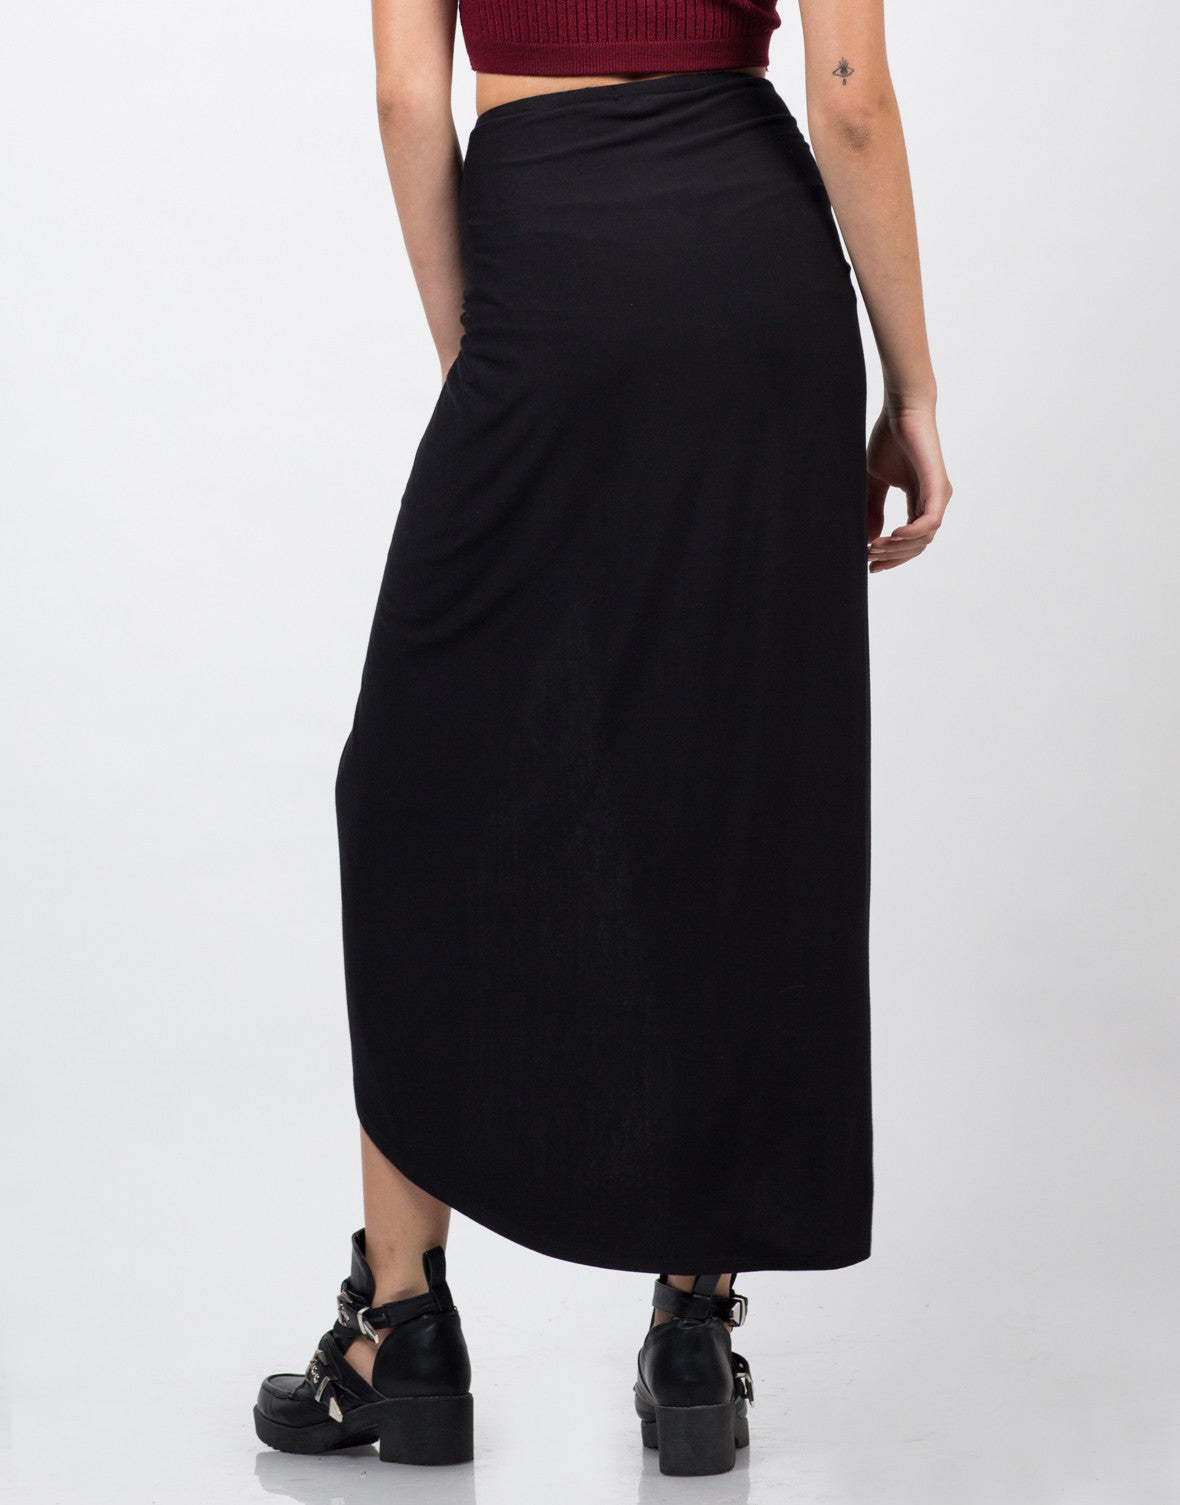 Back View of Drapey Maxi Skirt